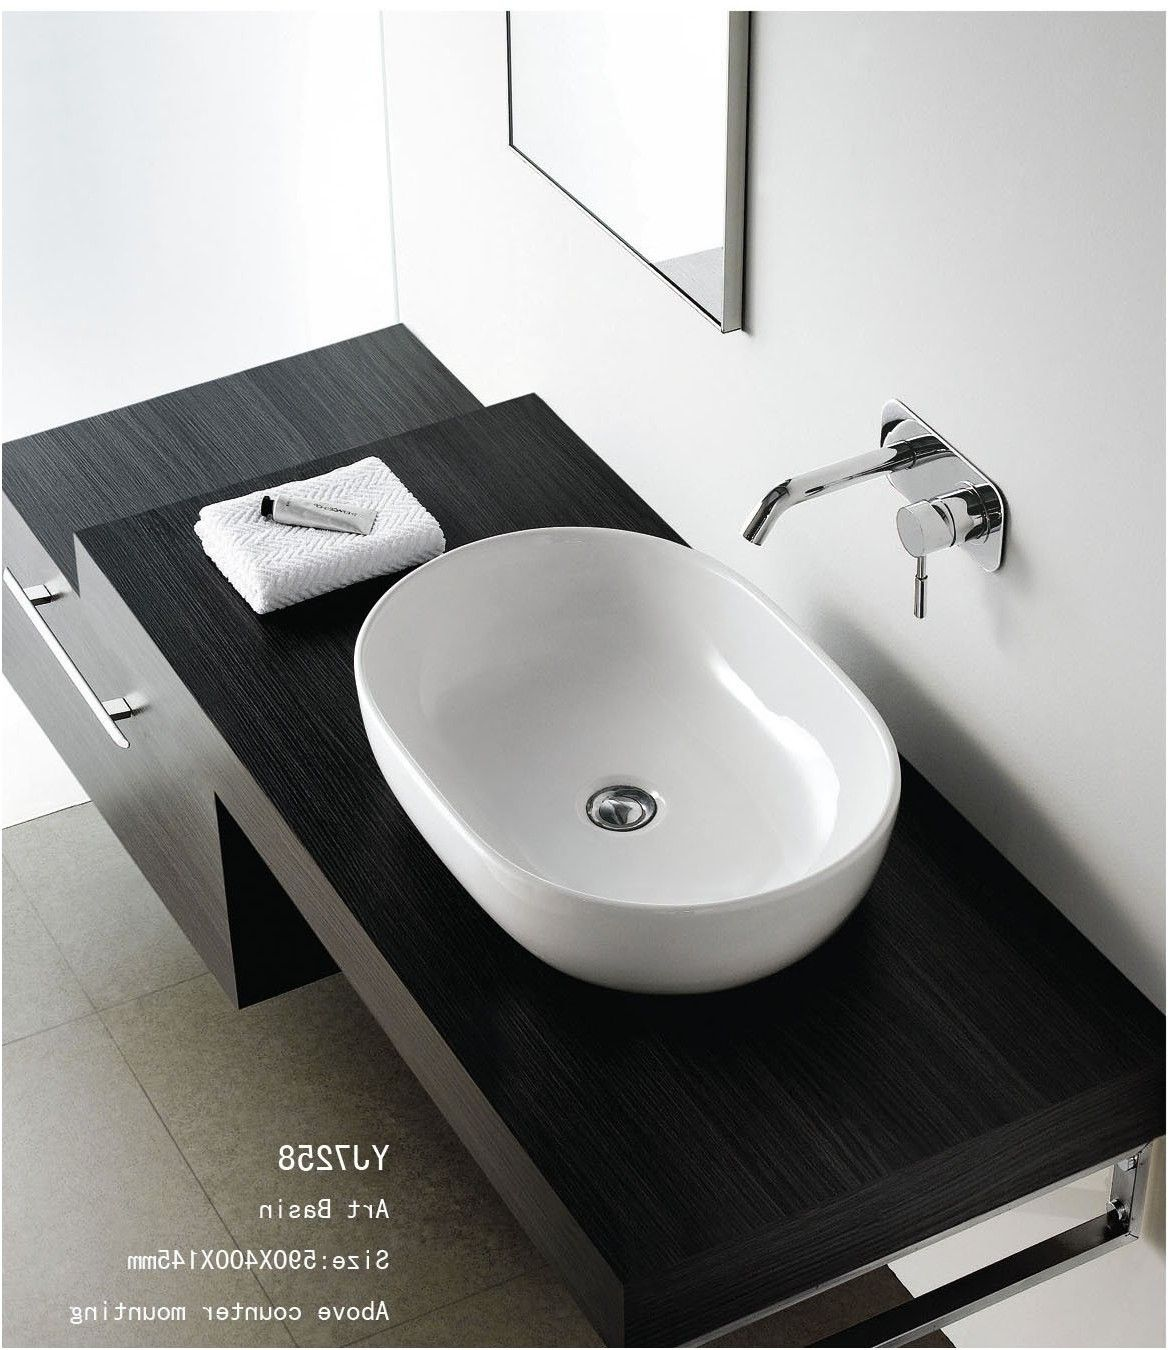 Designer Bathroom Sinks Basins Brilliant Designer Bathroom Sinks Basins Gurdjieffouspensky From Bathroom Design Ideas